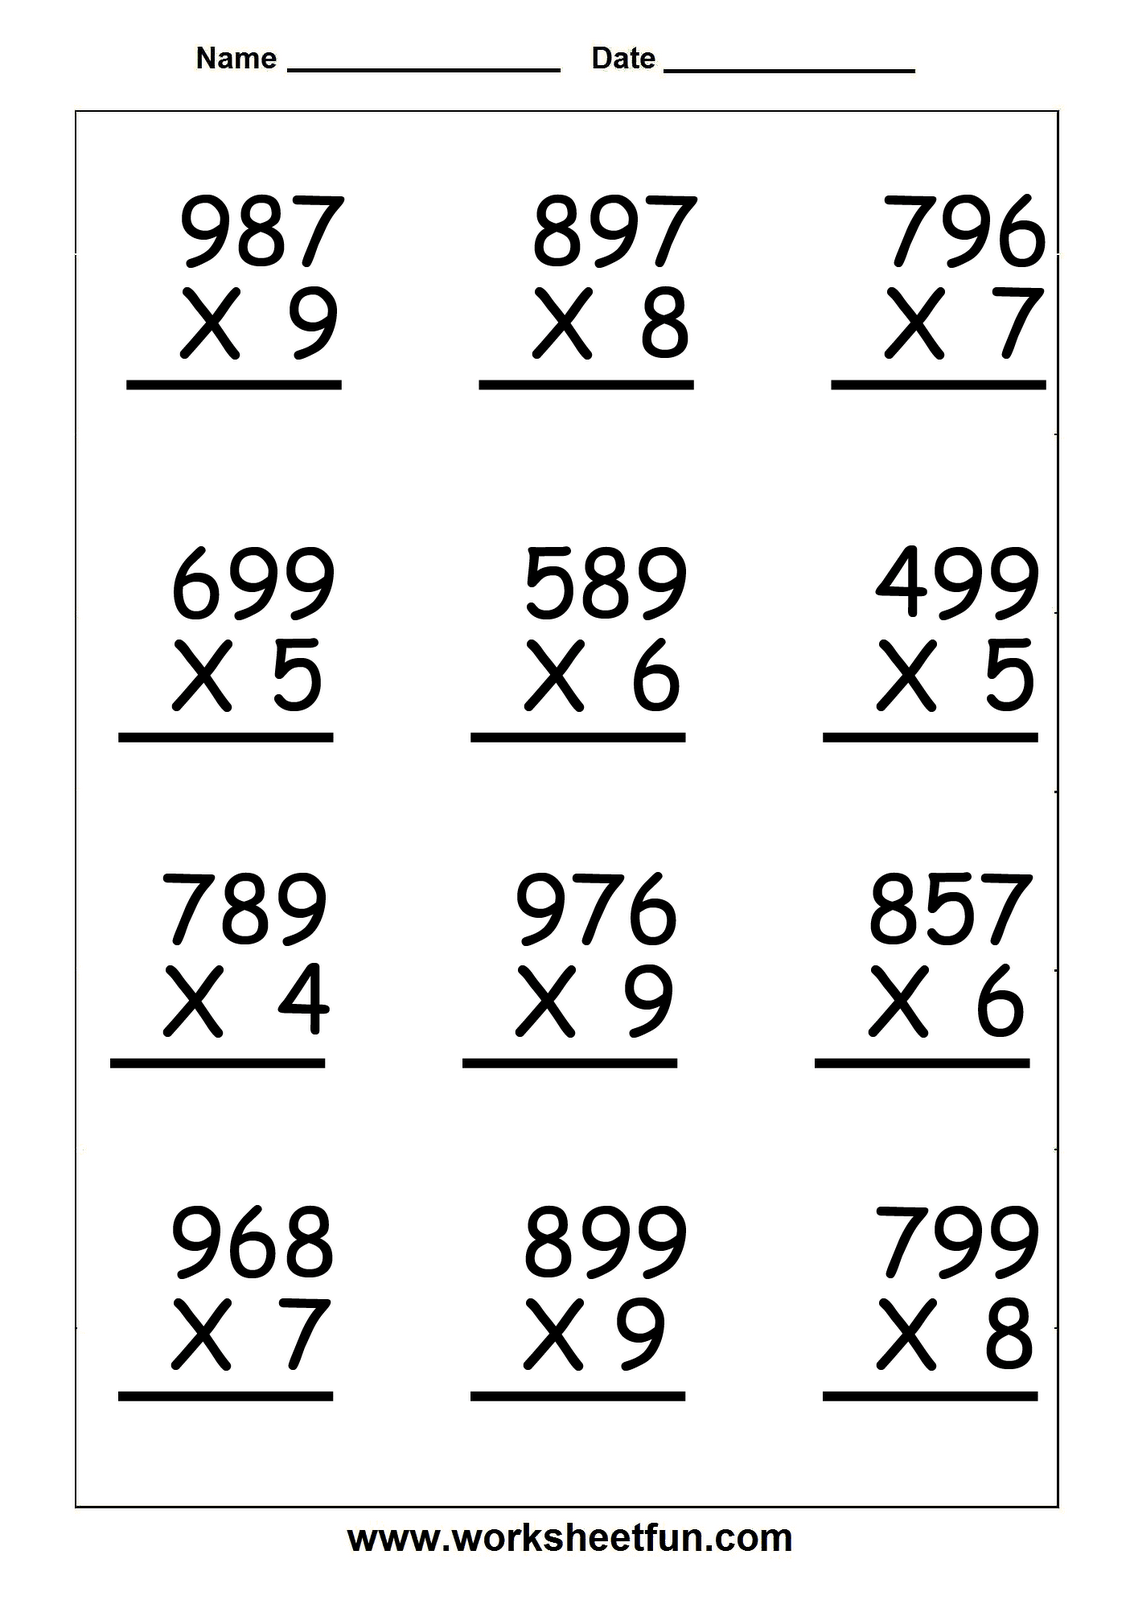 hight resolution of 21 Best 4 And 5th Grade Math Worksheets images on Worksheets Ideas